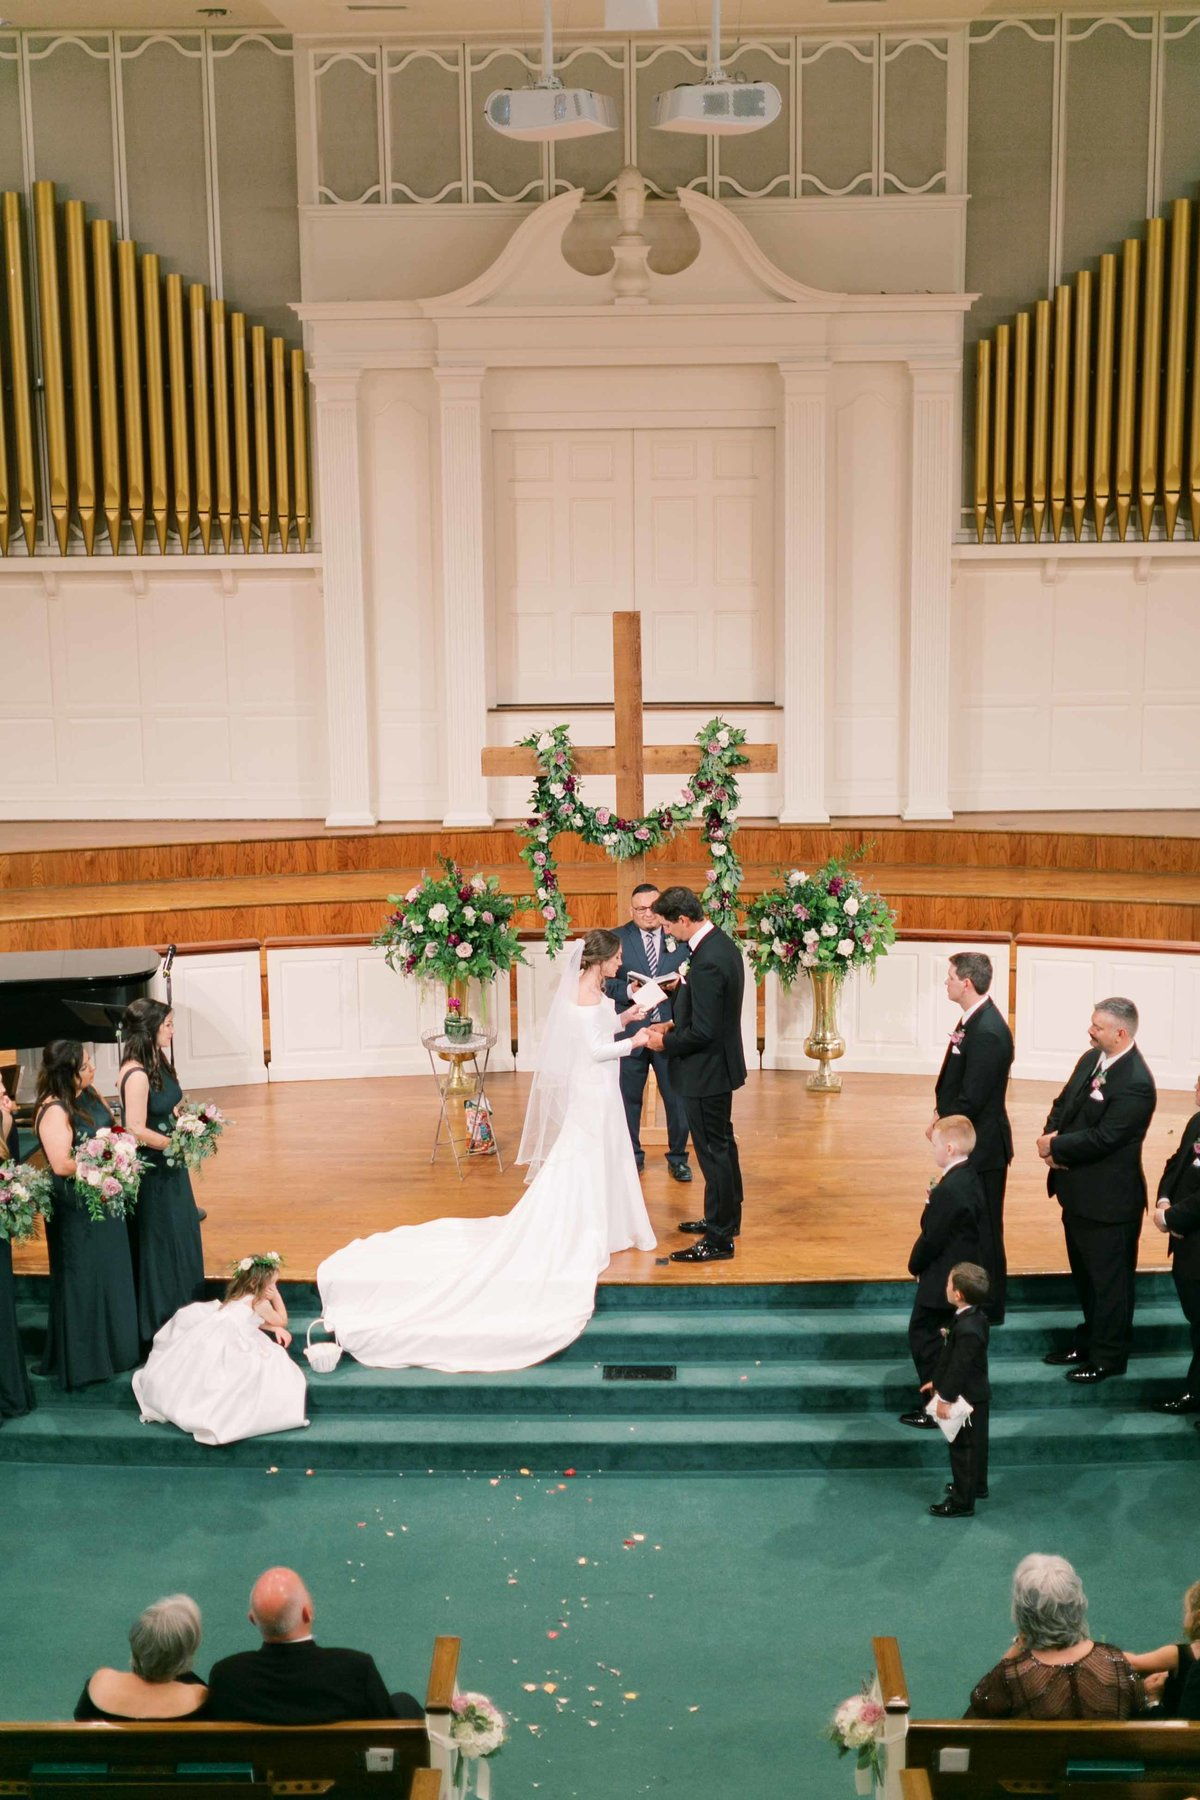 Angel_owens_photography_wedding_oliviarobert133